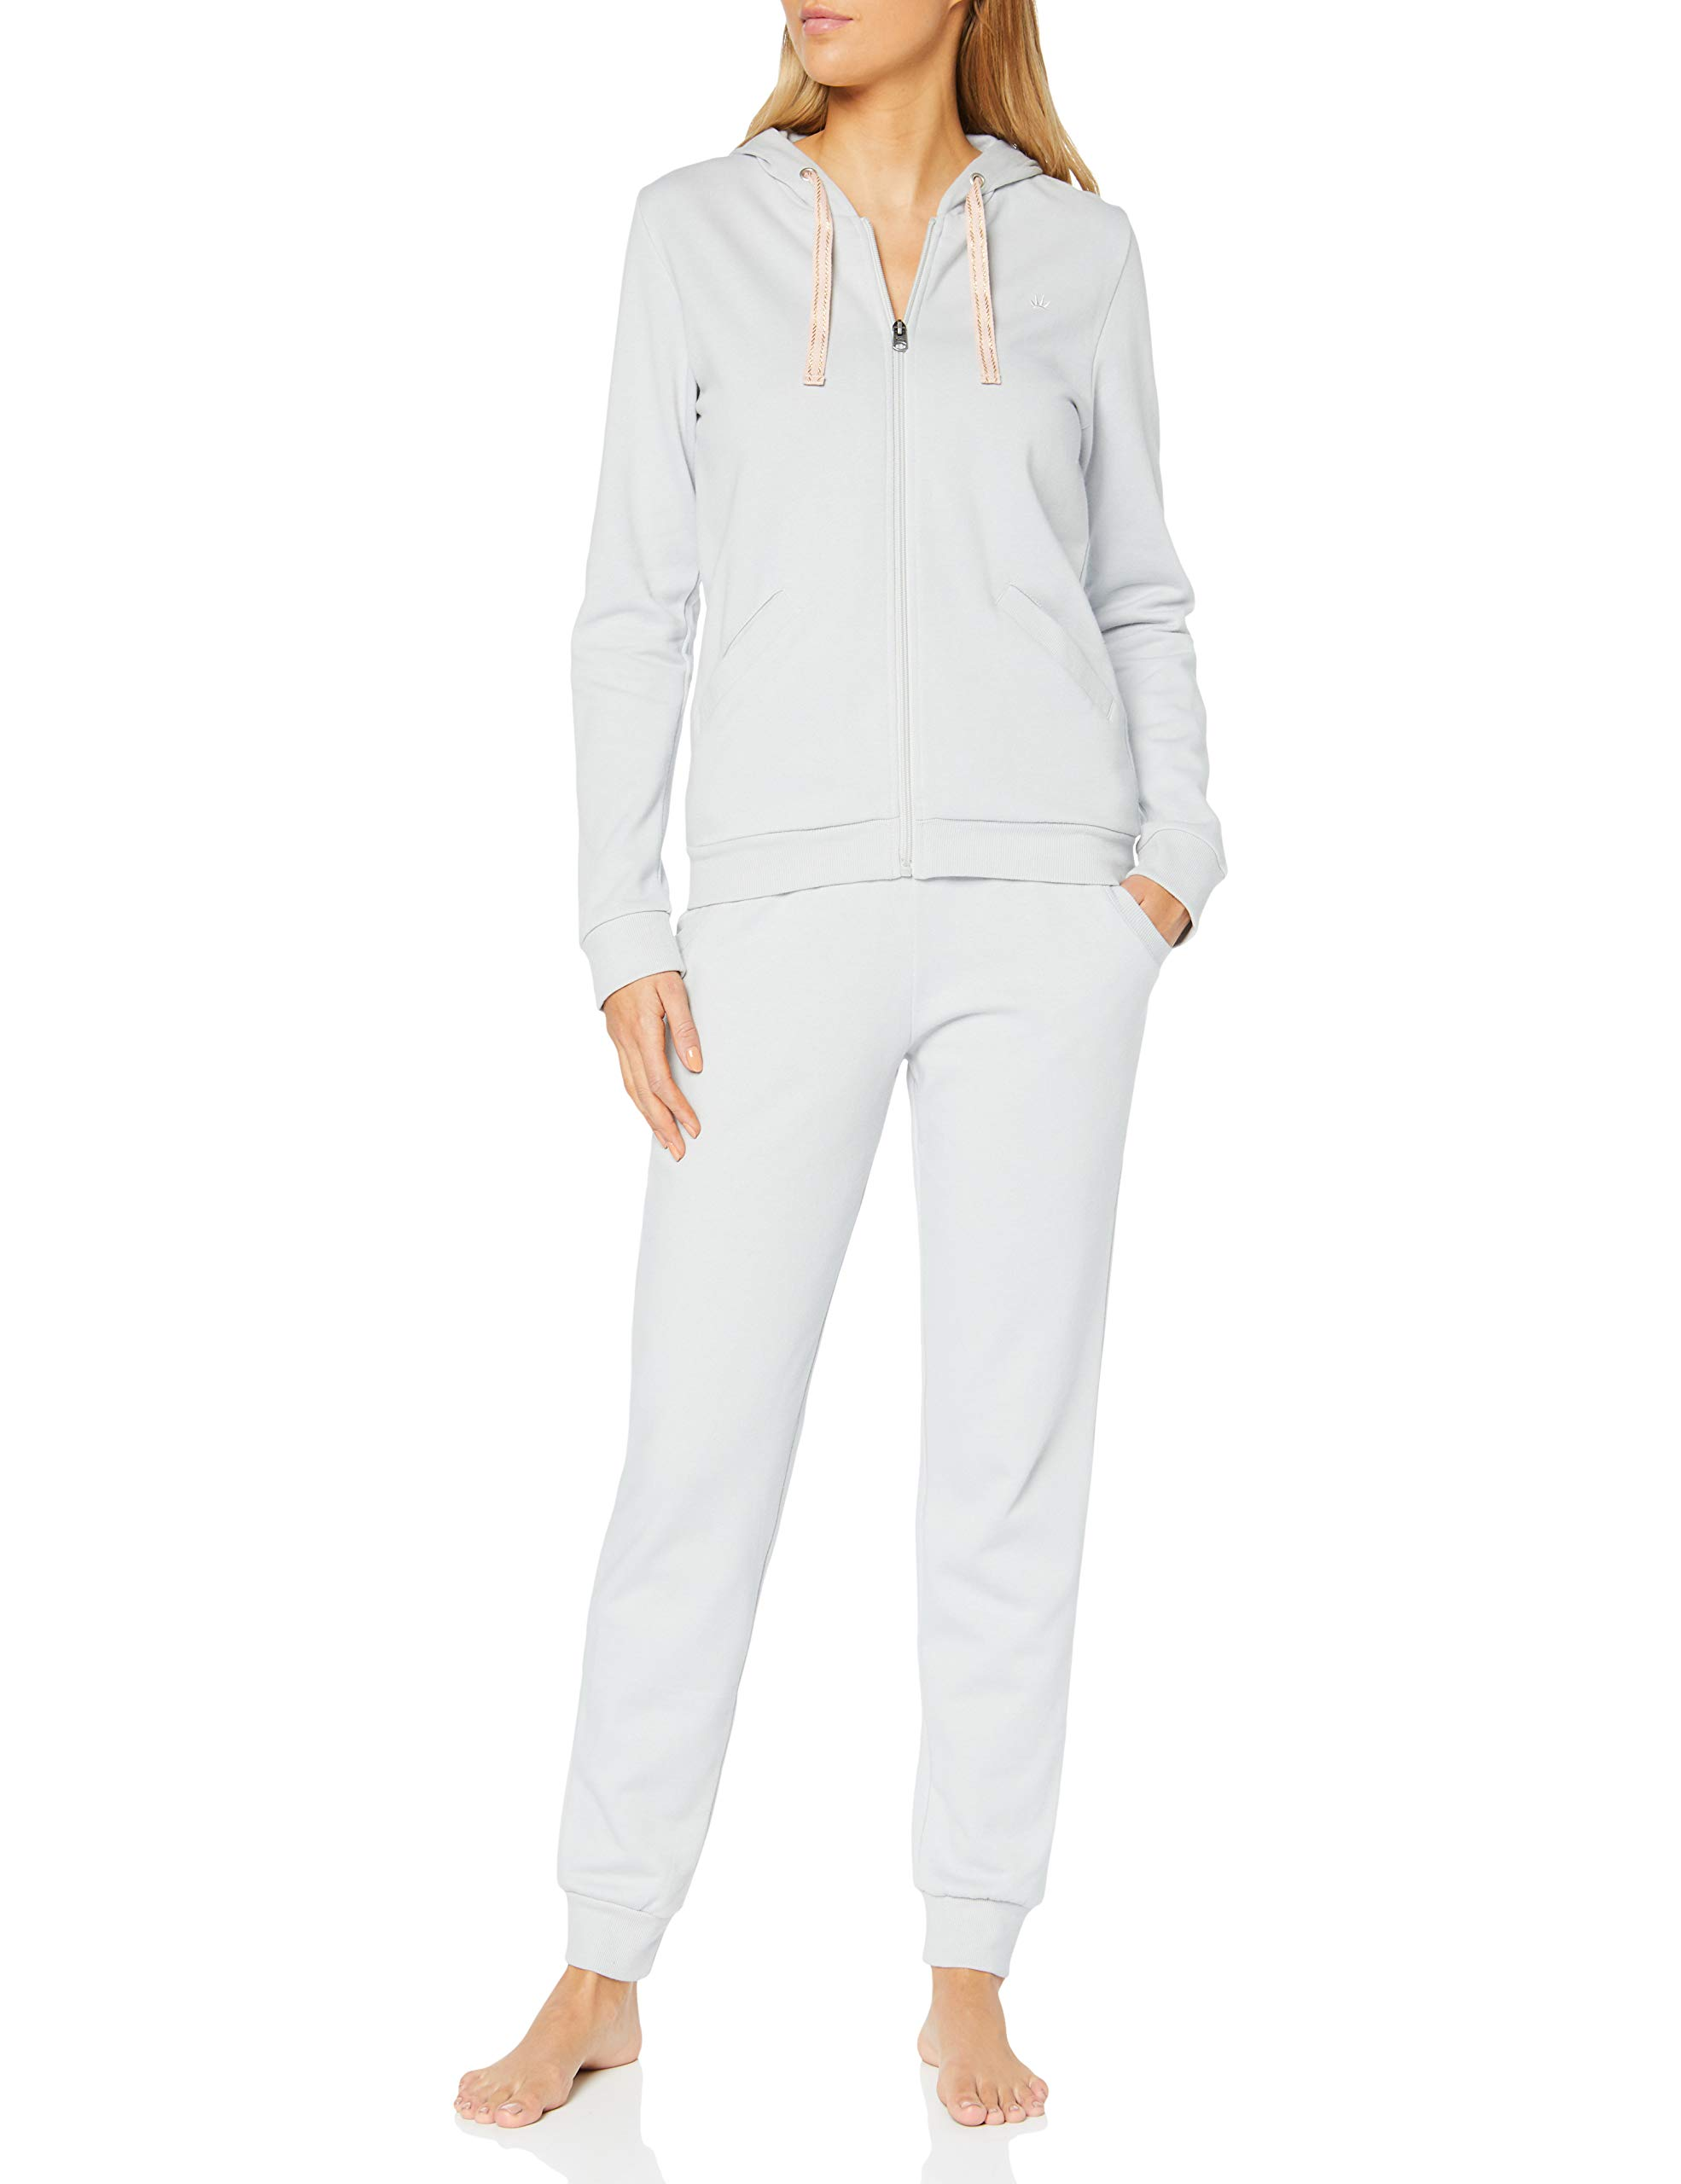 Sweat De Ls Triumph PyjamaGris40 Femme Sets Ensemble GzVpLUMqS